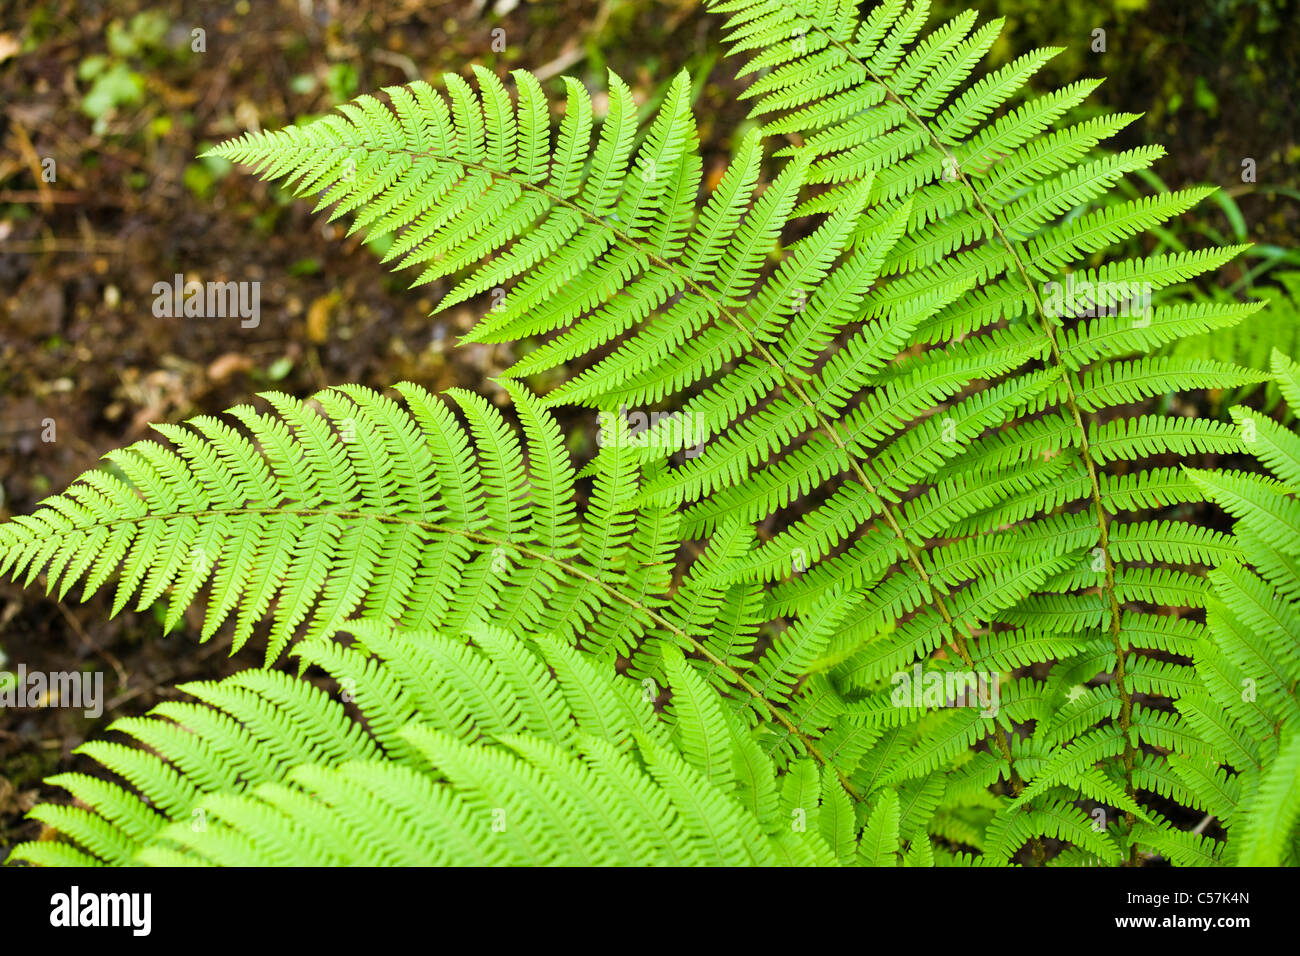 Fern leaves. UK. - Stock Image